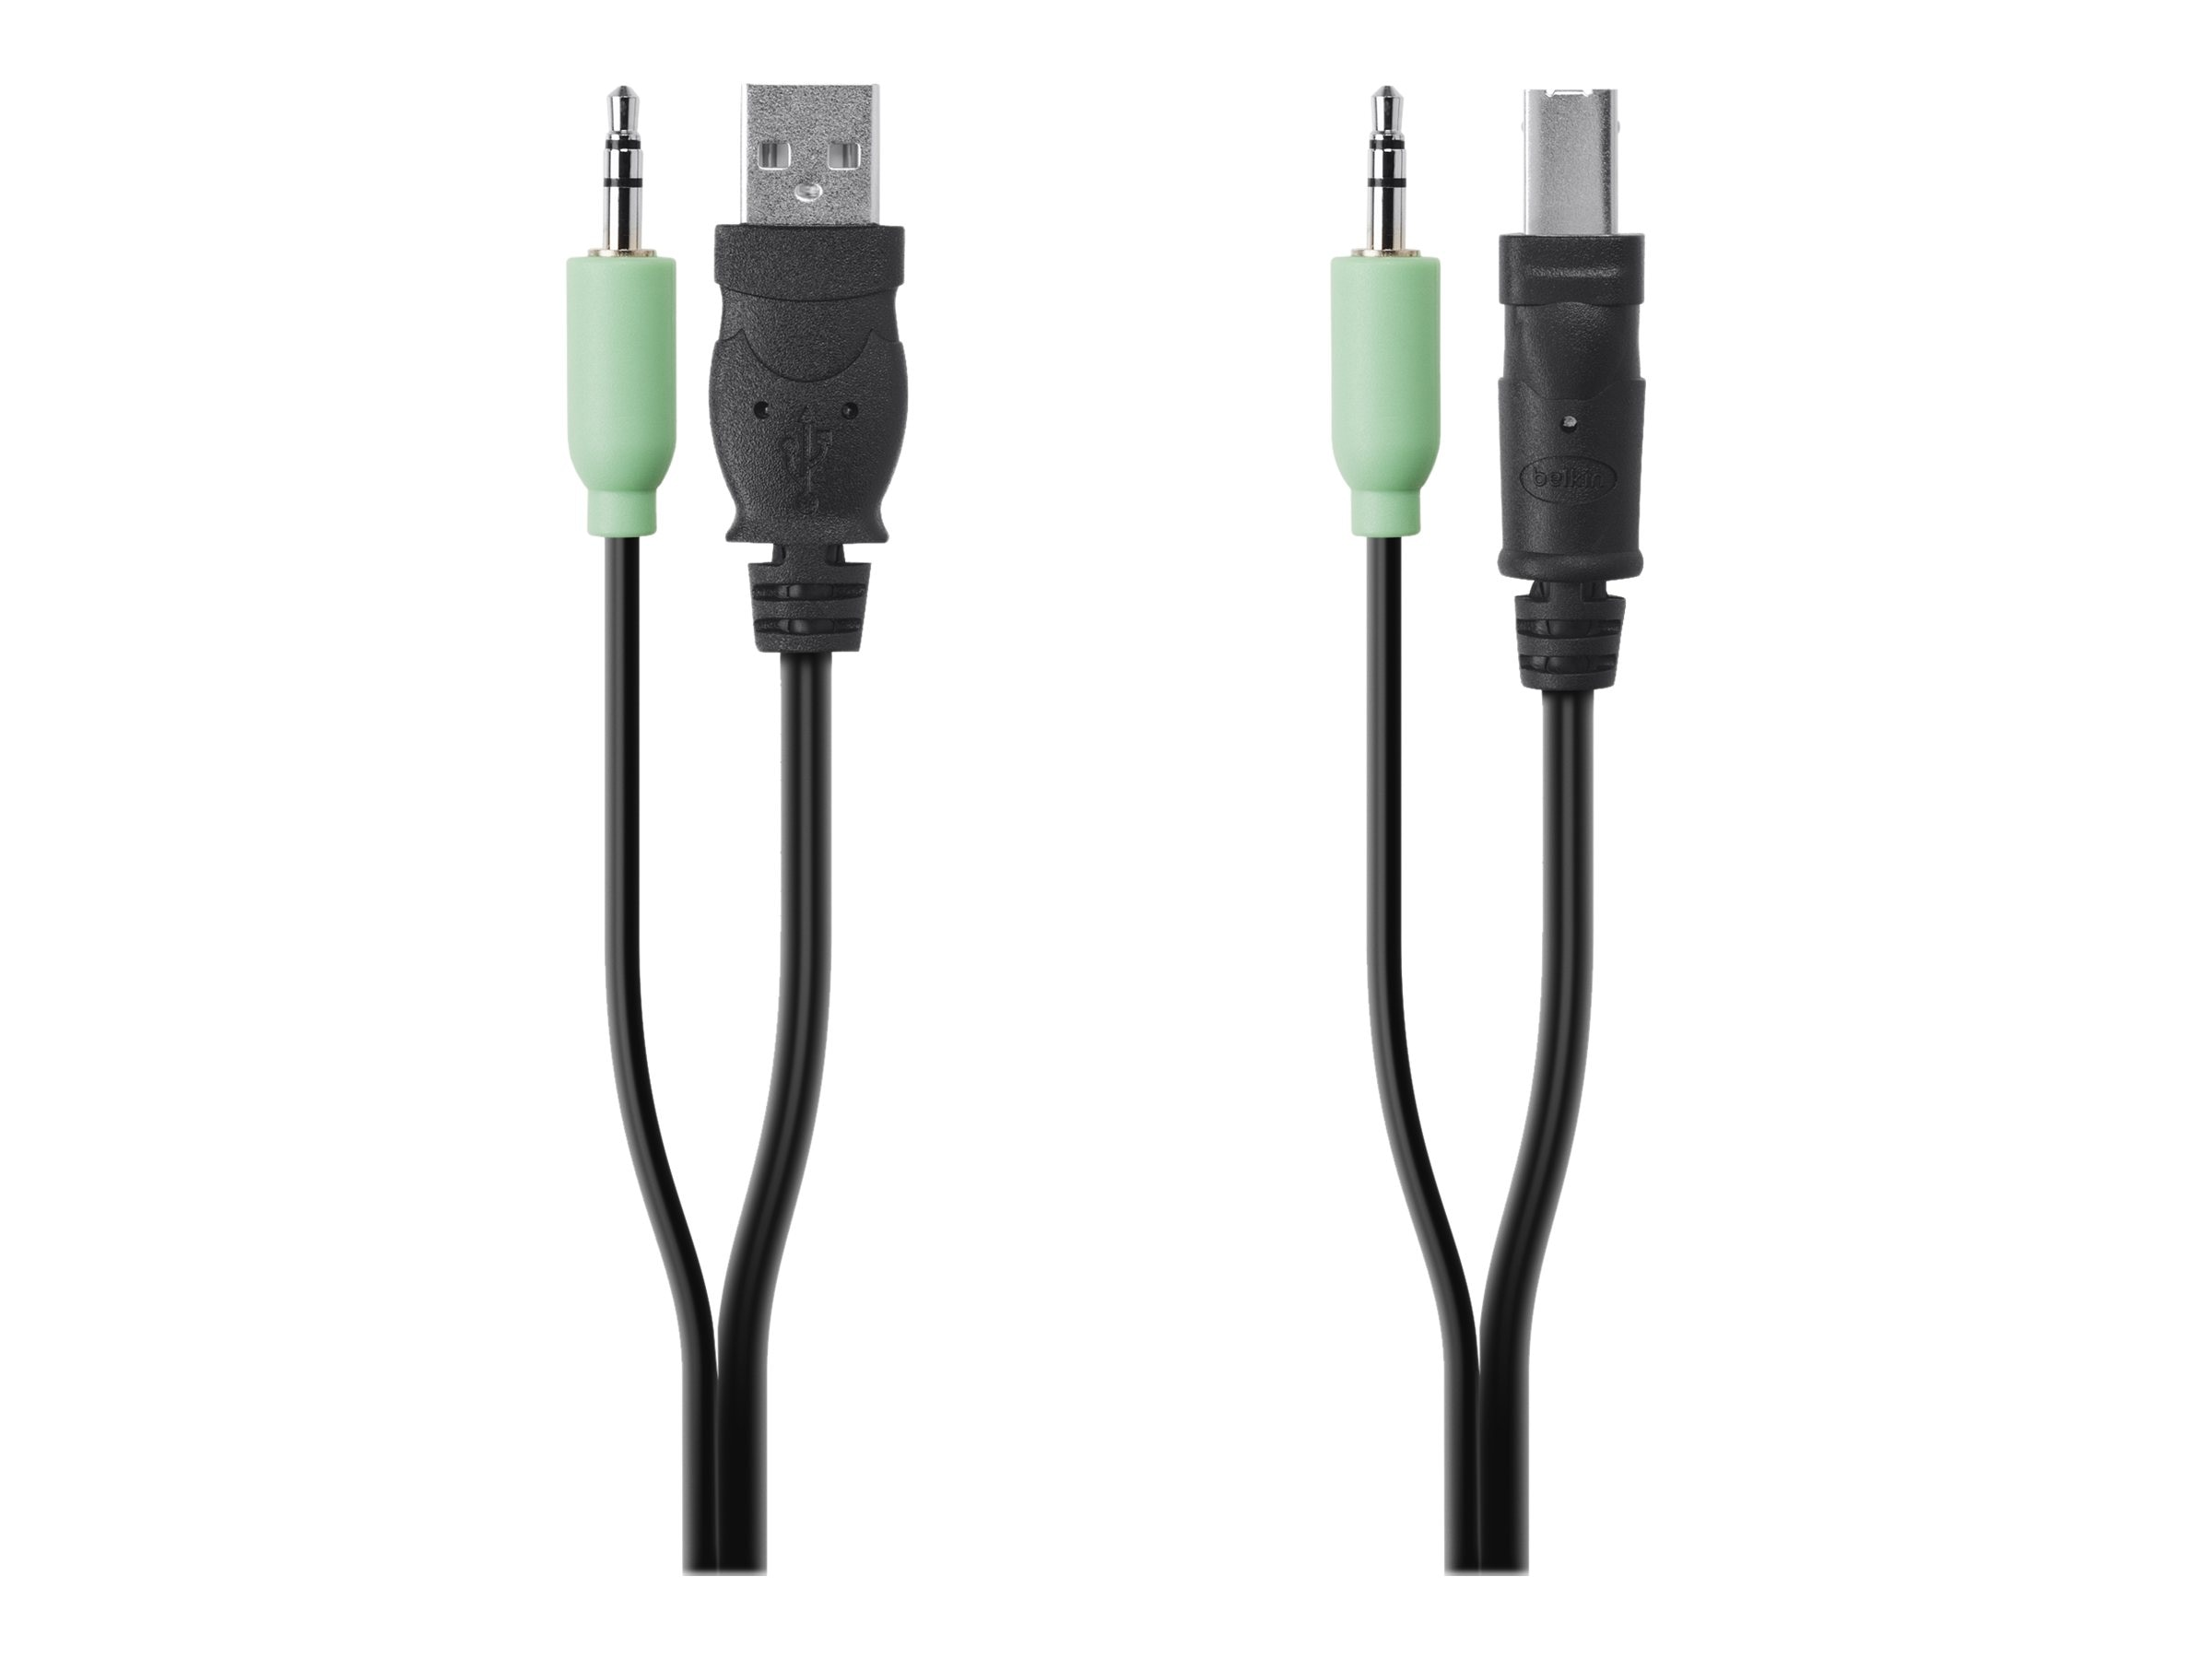 Belkin USB Audio SKVM Cable, USB Type A to USB Type B, 3.5mm Audio, 6ft